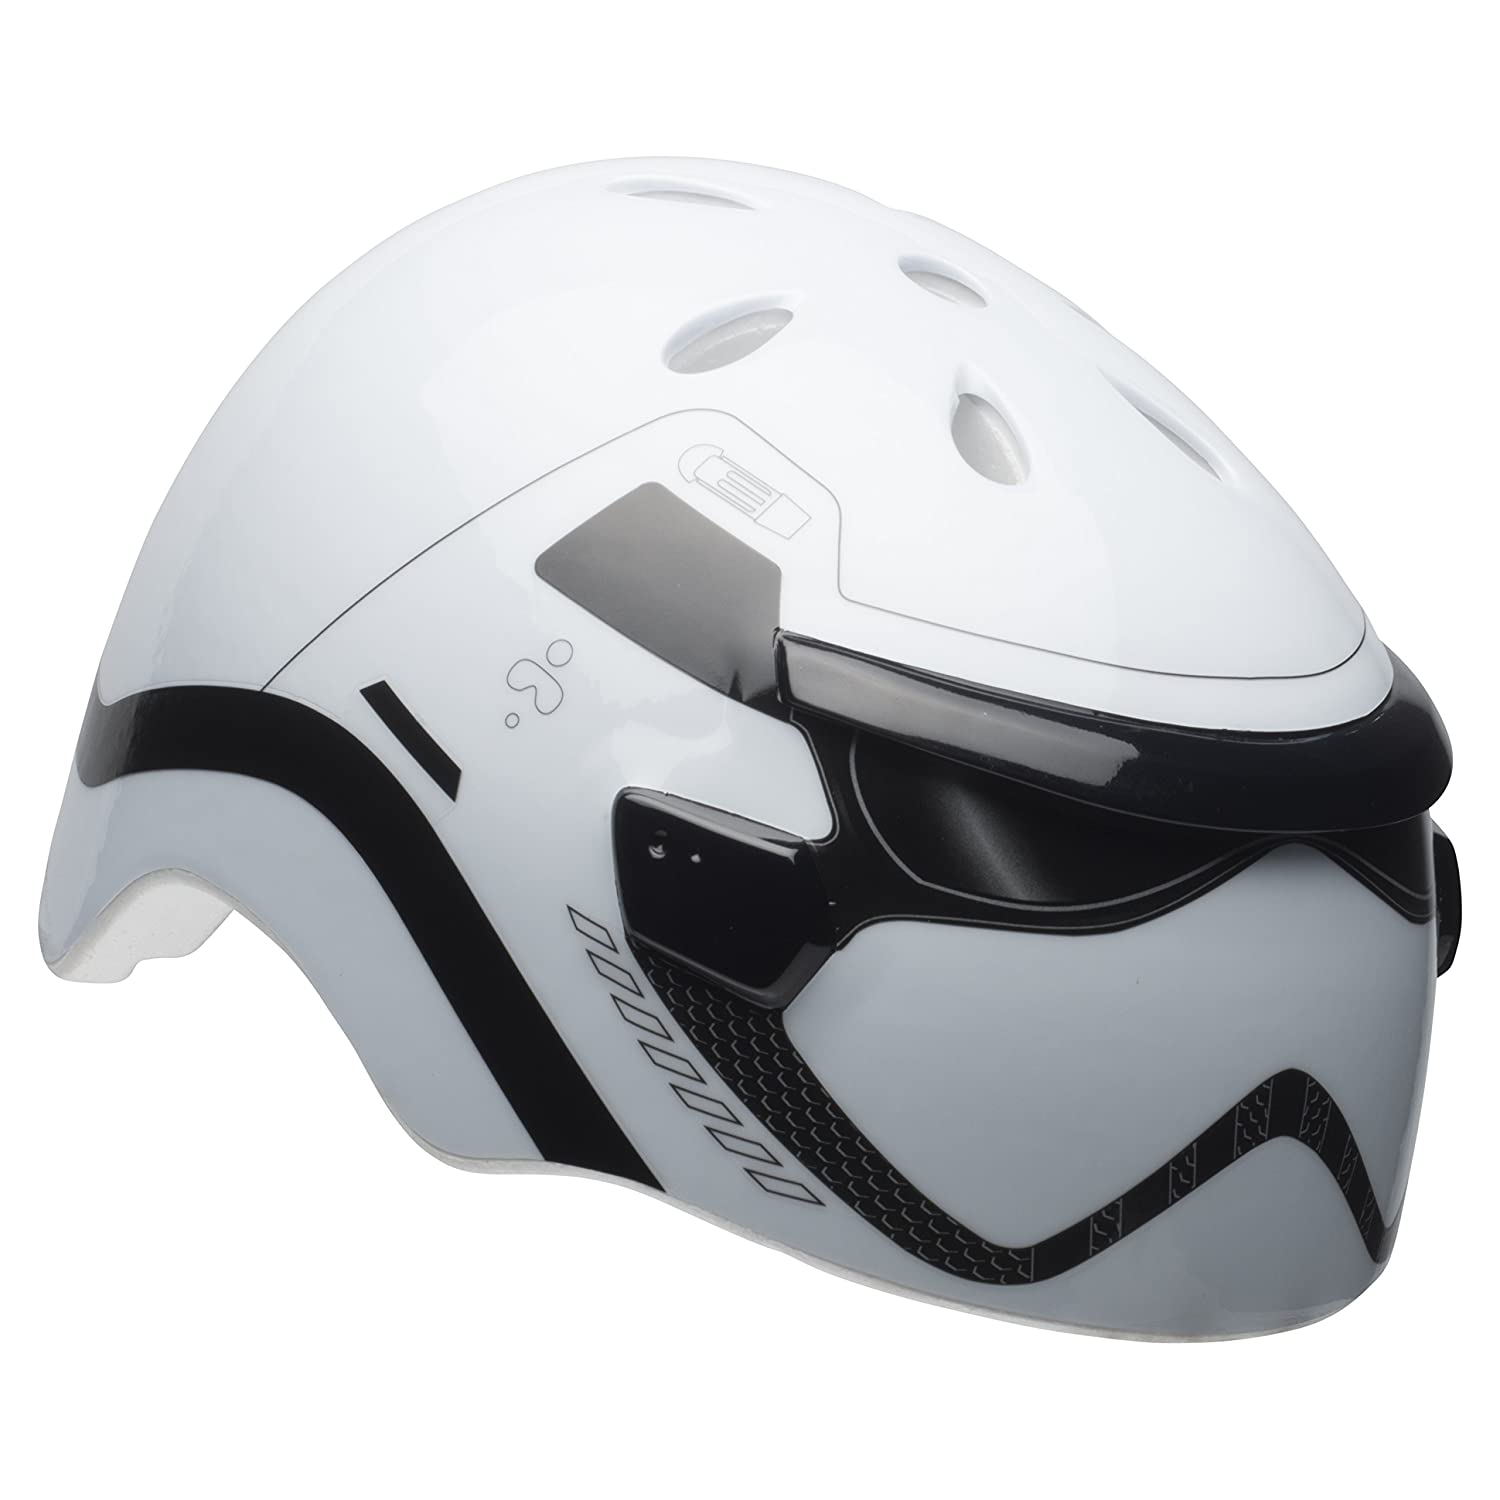 BELL Kinder Star Wars 3D Trooper Child MS EU Helmet, Multi-Coloured, 50-54 cm T1L3U|#Bell 7095425